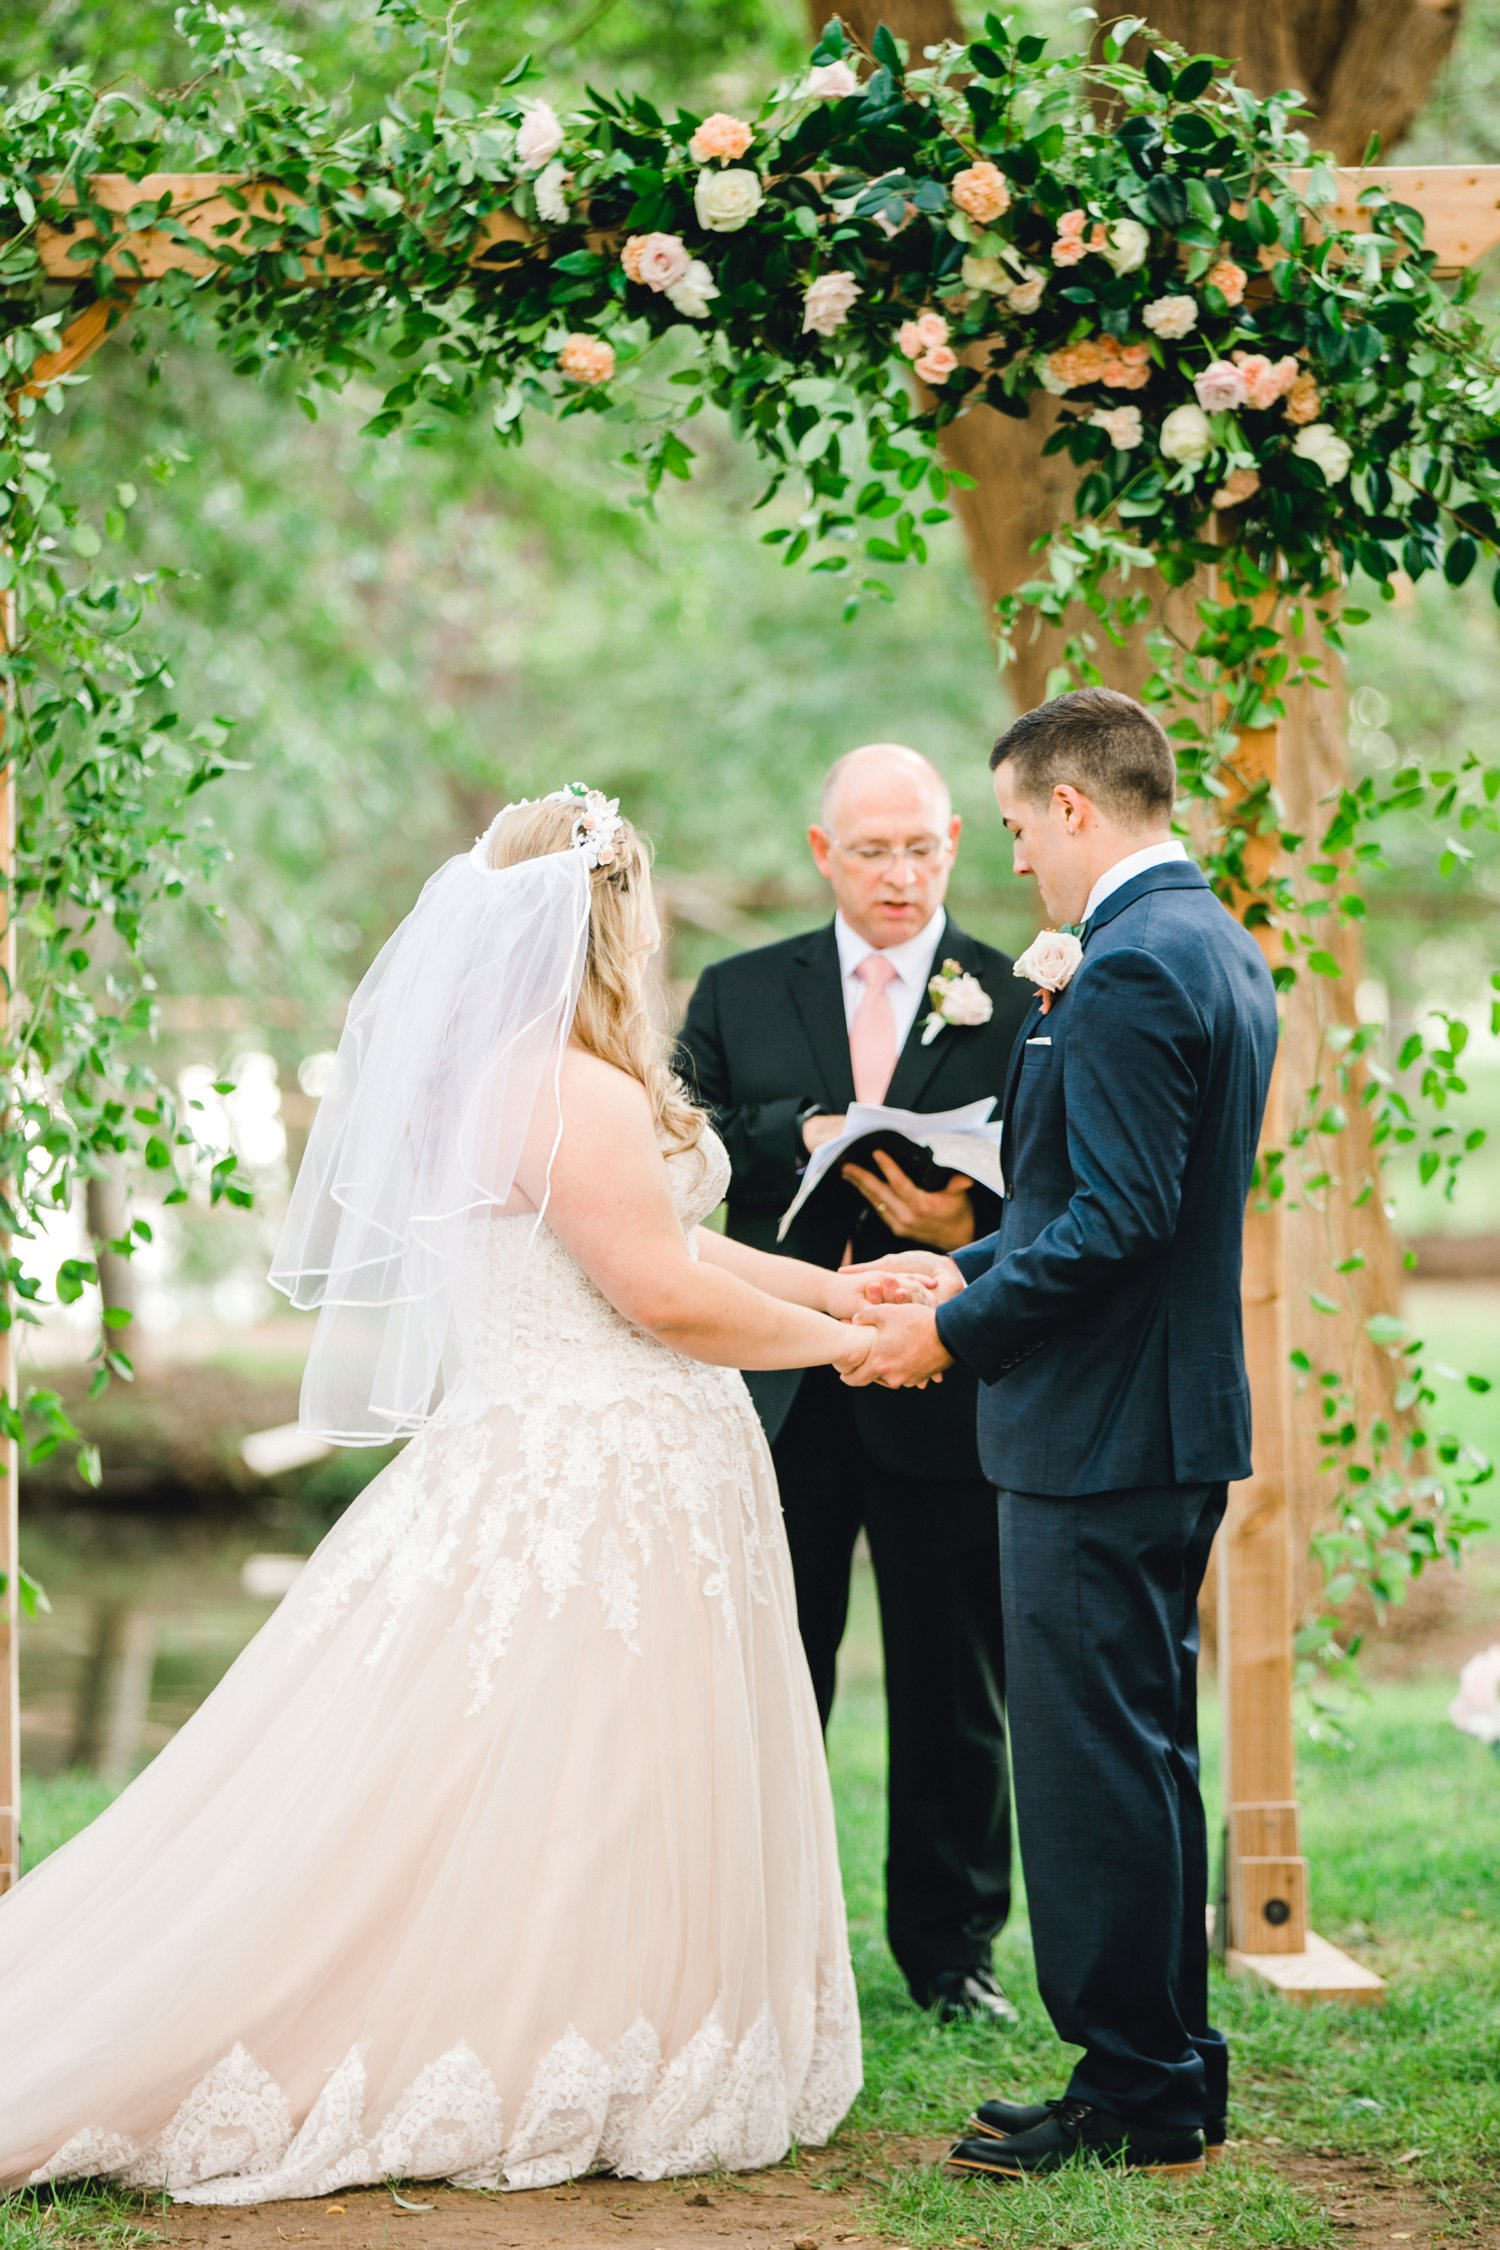 SARAH_AND_GEOFFREY_SHARP_SPIRIT_RANCH_WEDDING_ALLEEJ_LUBBOCK_TX_0060.jpg